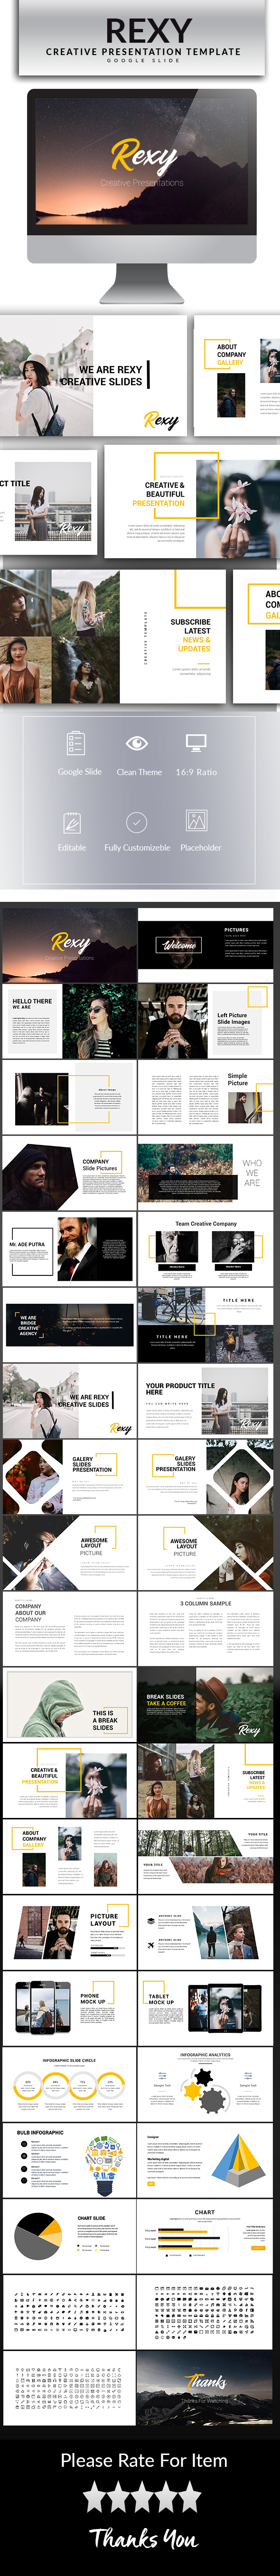 Rexy Google Slide Template - Google Slides Presentation Templates